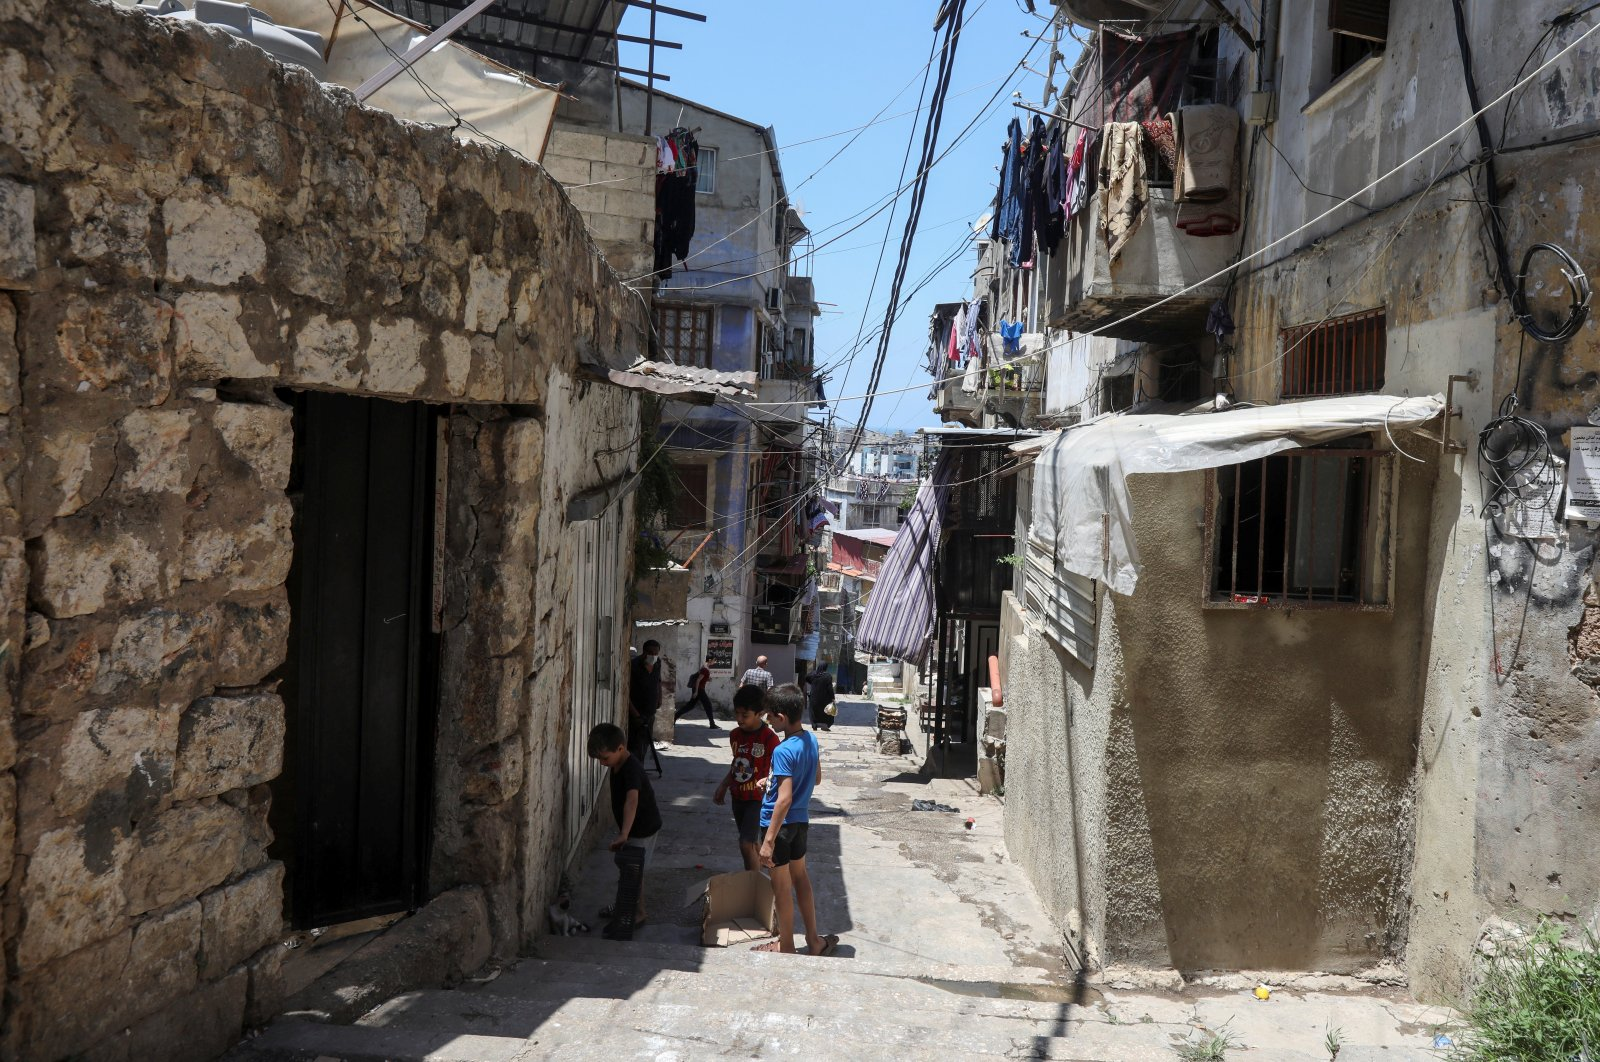 Boys play along an alleyway in Tripoli, northern Lebanon July 1, 2020. Picture taken July 1, 2020. (REUTERS Photo)